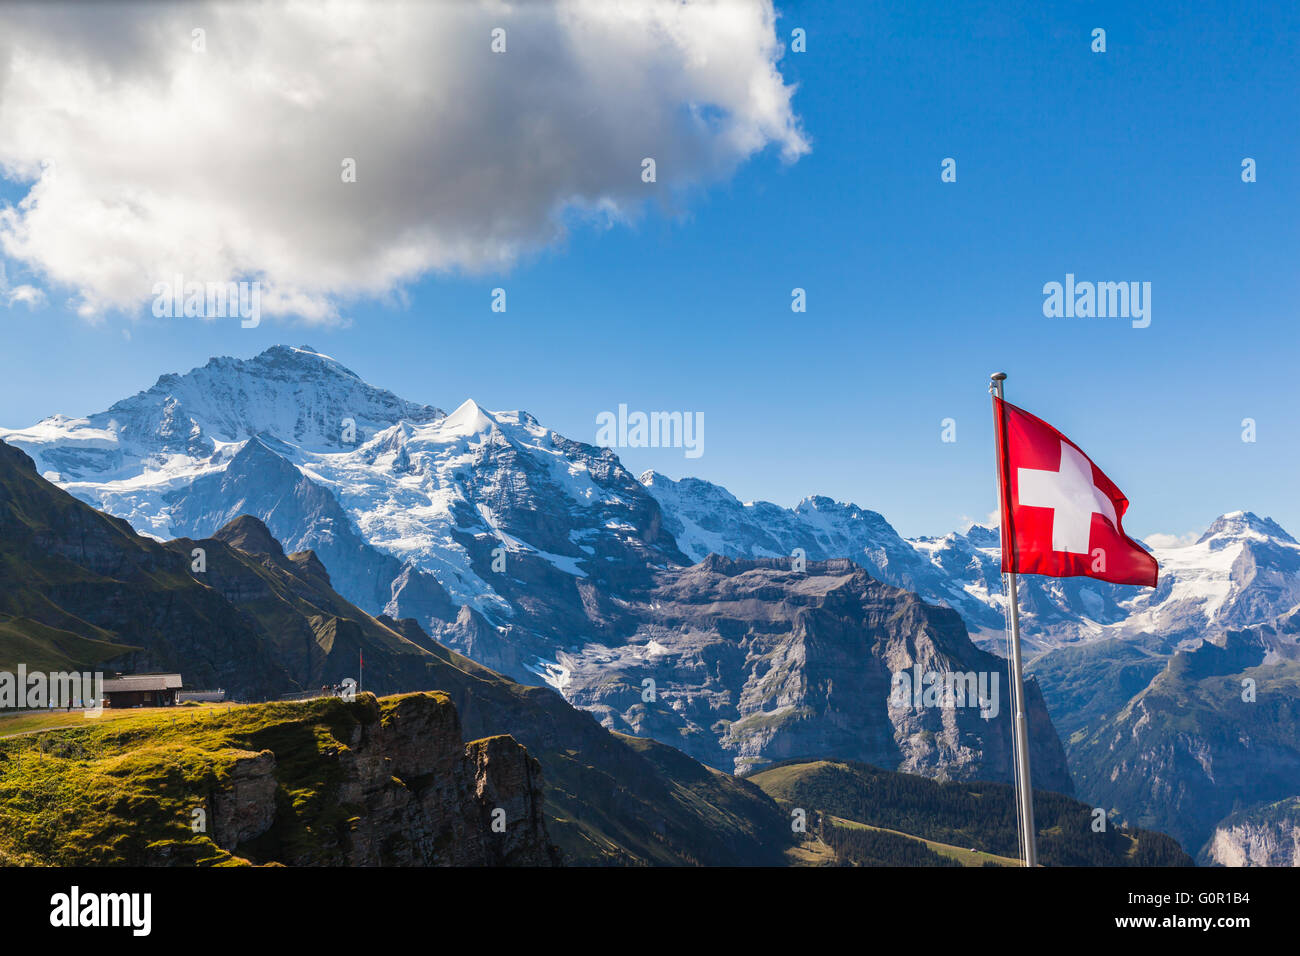 Stunning view of the Jungfrau and mountain range of Bernese alps from Mannlichen cablecar station, Switzerland. Stock Photo